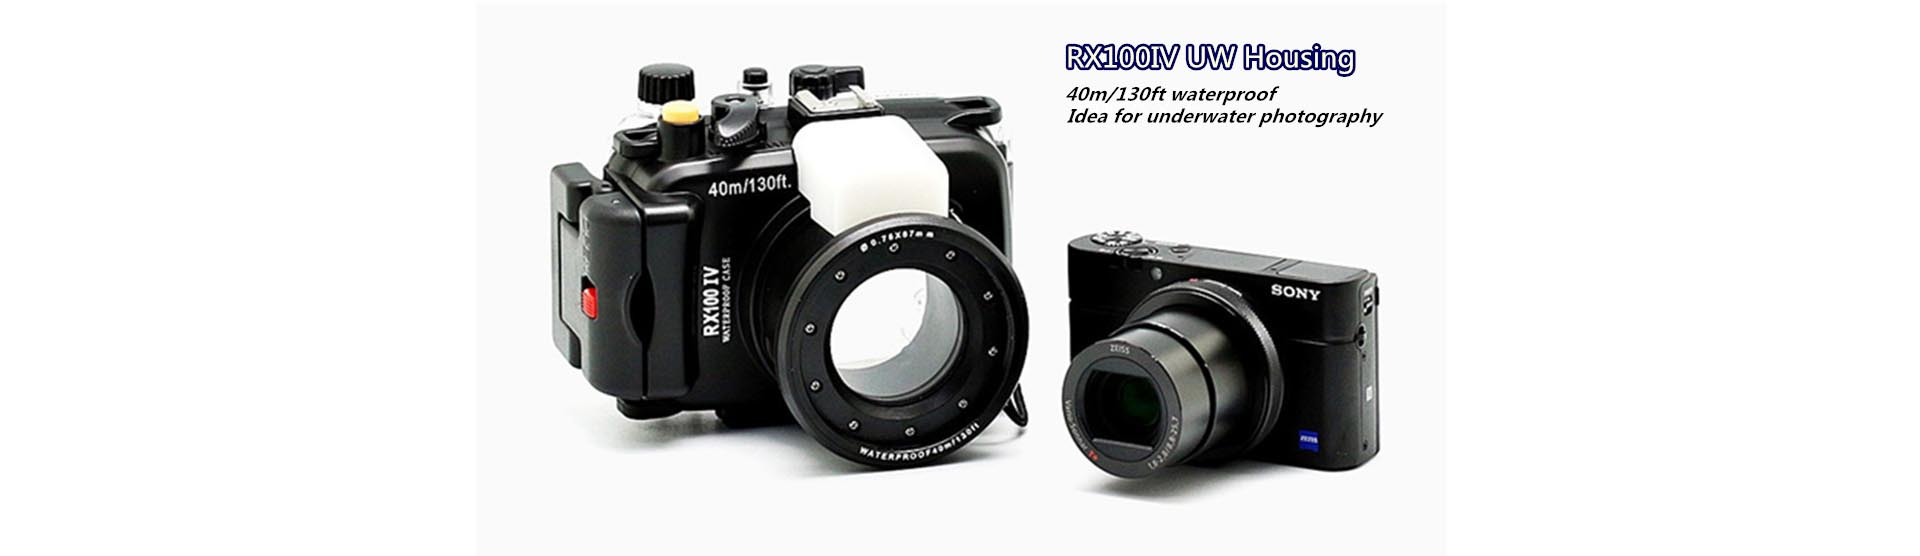 RX100IV underwater housing for scuba